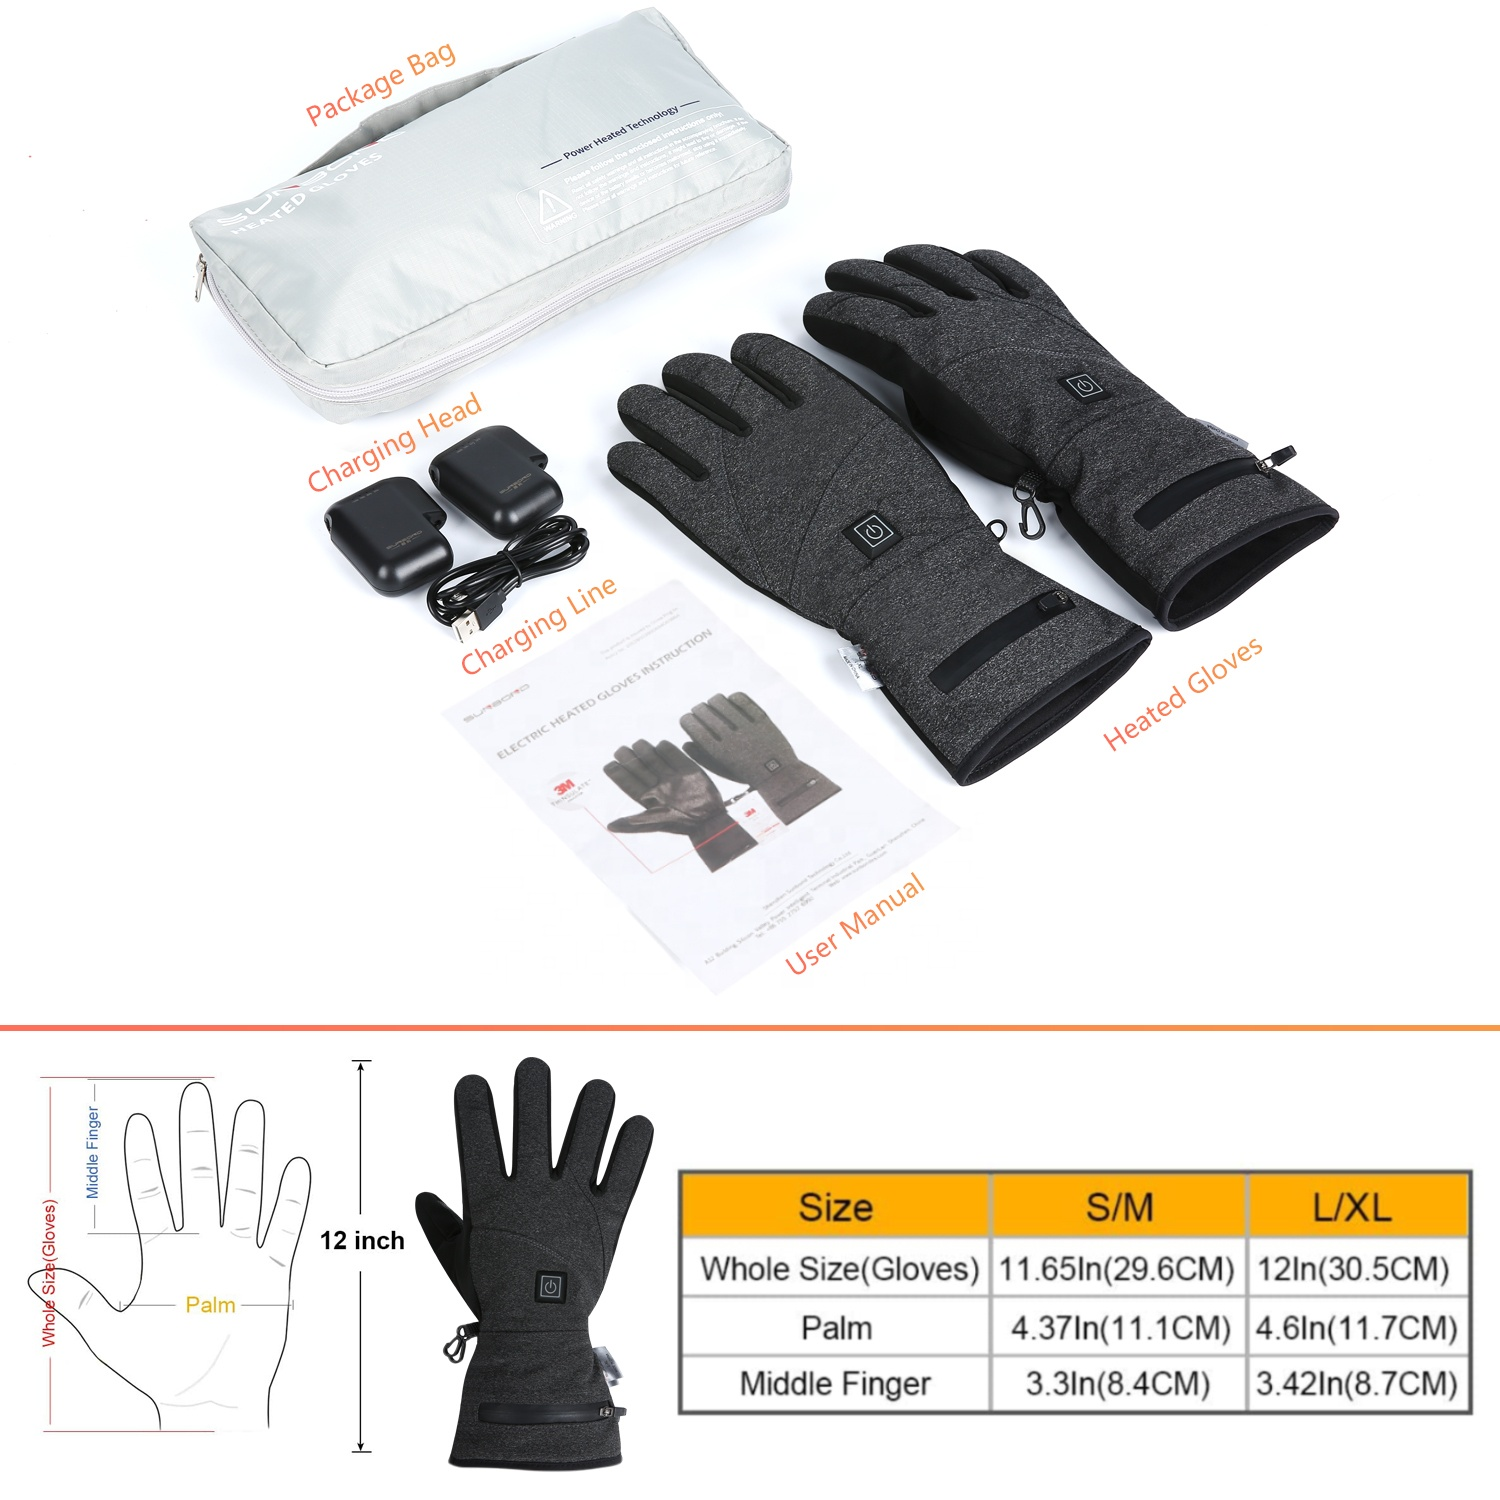 Sunbond Heated Gloves | 3M Cotton Touch Screen Heating Control Rechargeable Battery Hand Warmer for Treatment of Arthritis | for